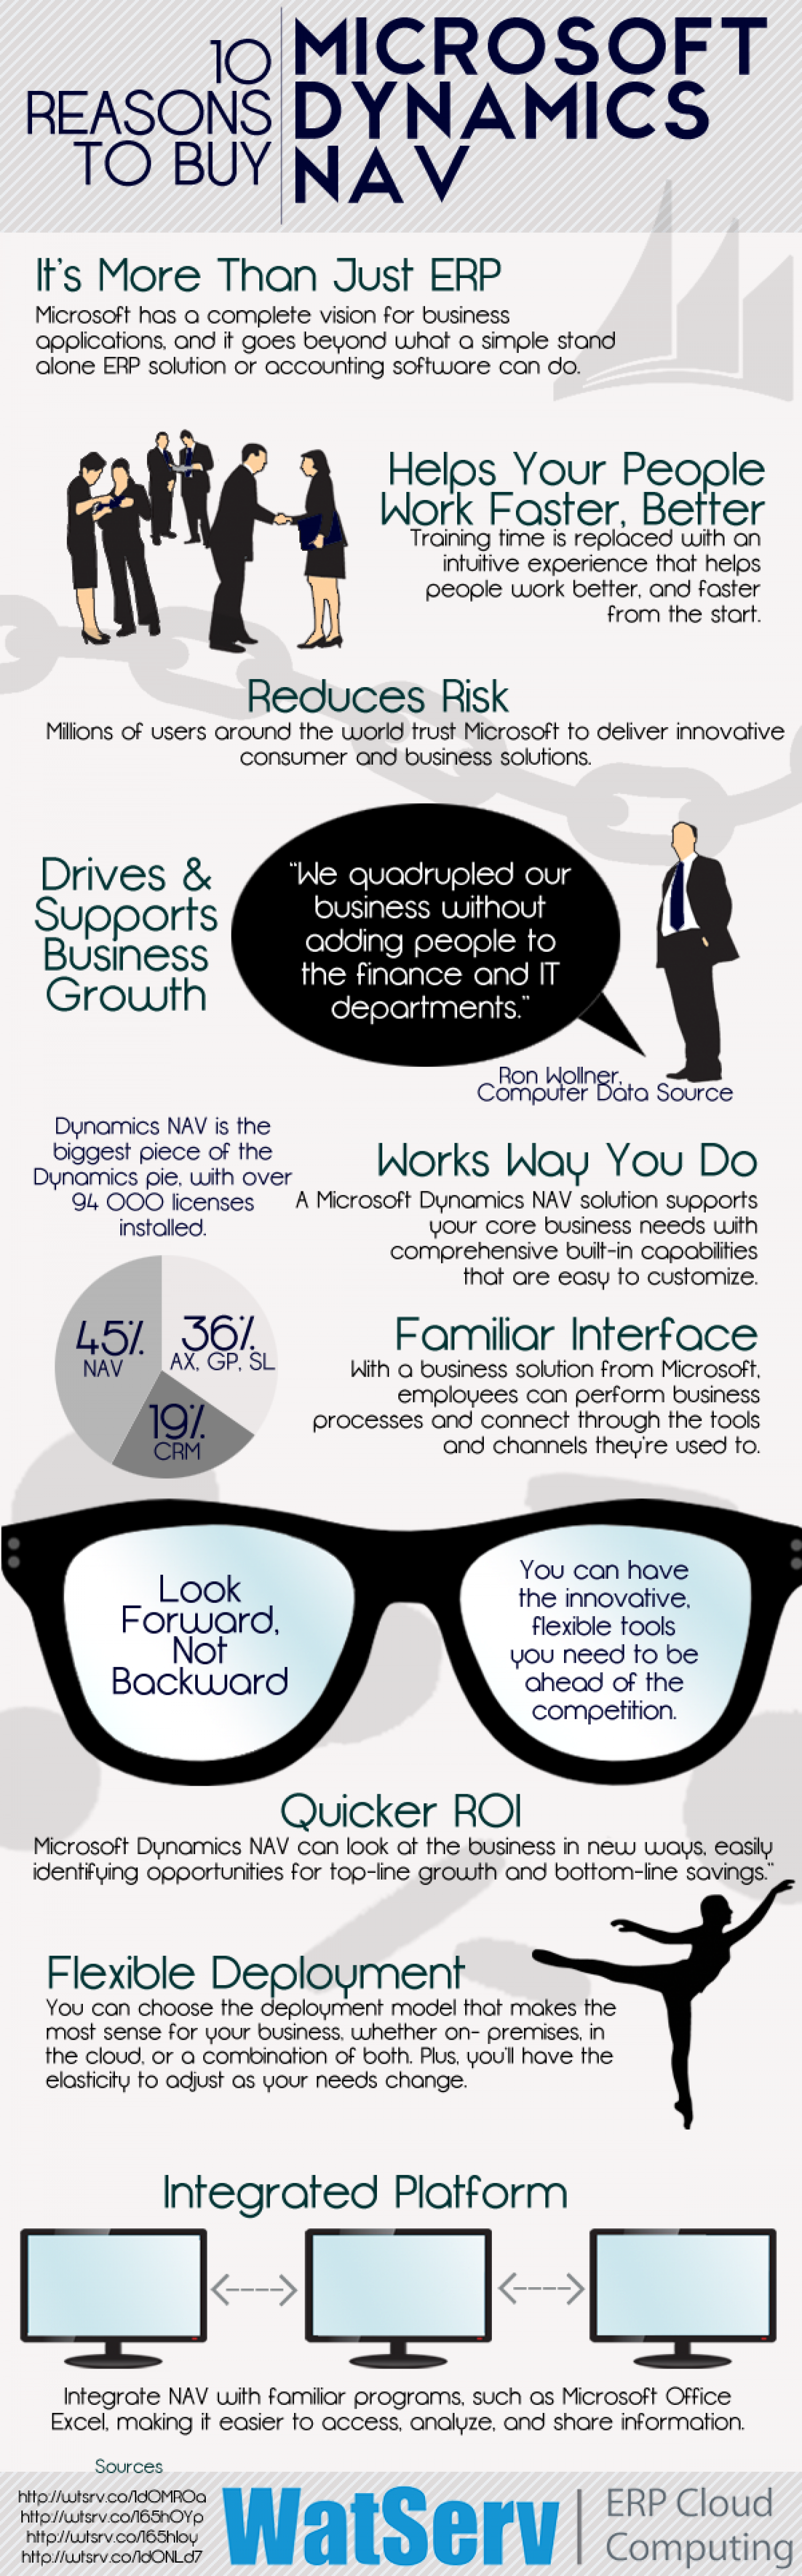 10 Reasons to Buy Microsoft Dynamics NAV Infographic